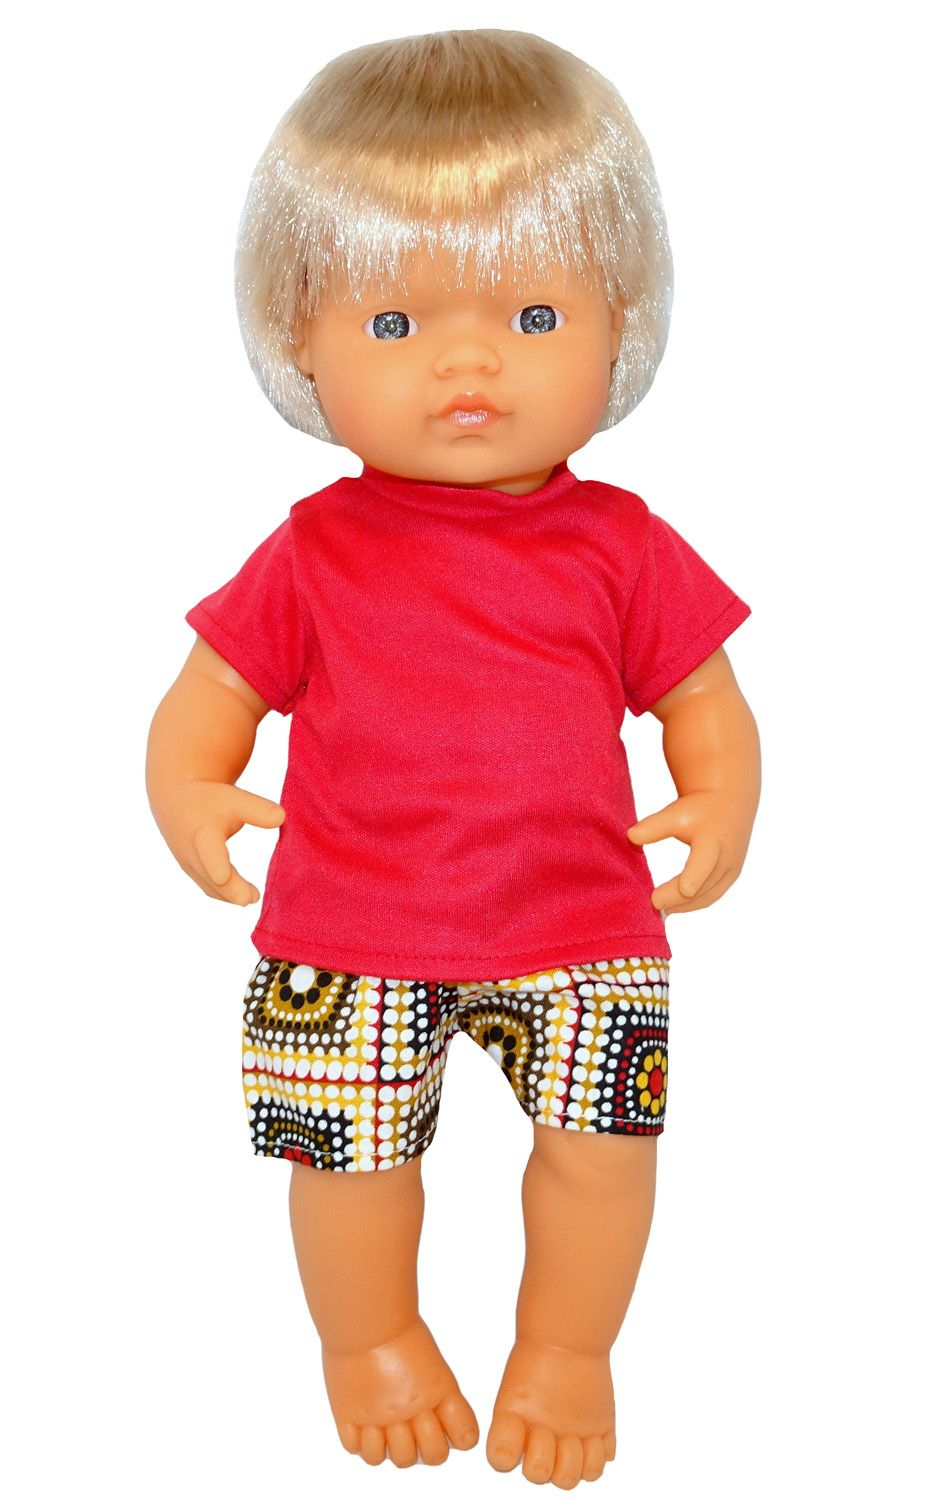 Shorts & Tshirt Red (s) Girl doll clothes, Simple